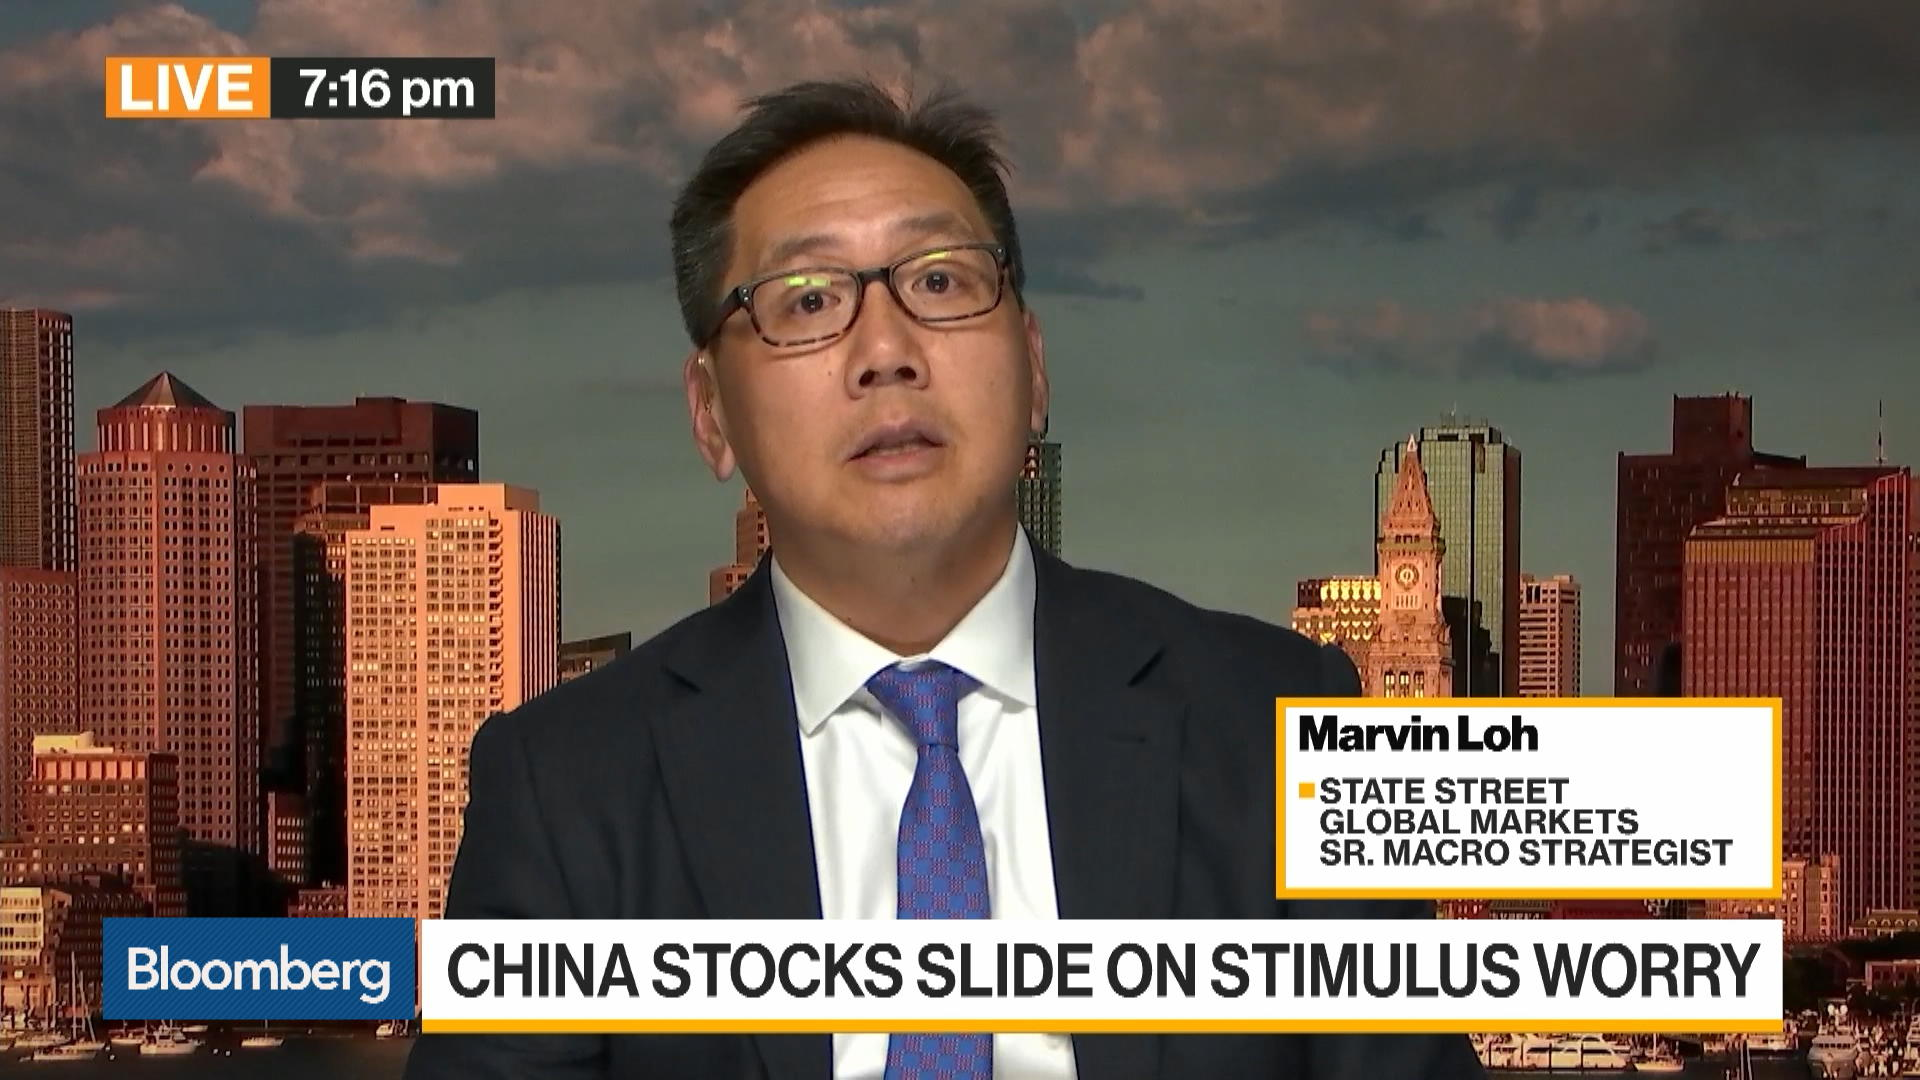 We're Looking for Stability Coming Out of China, Says State Street's Loh